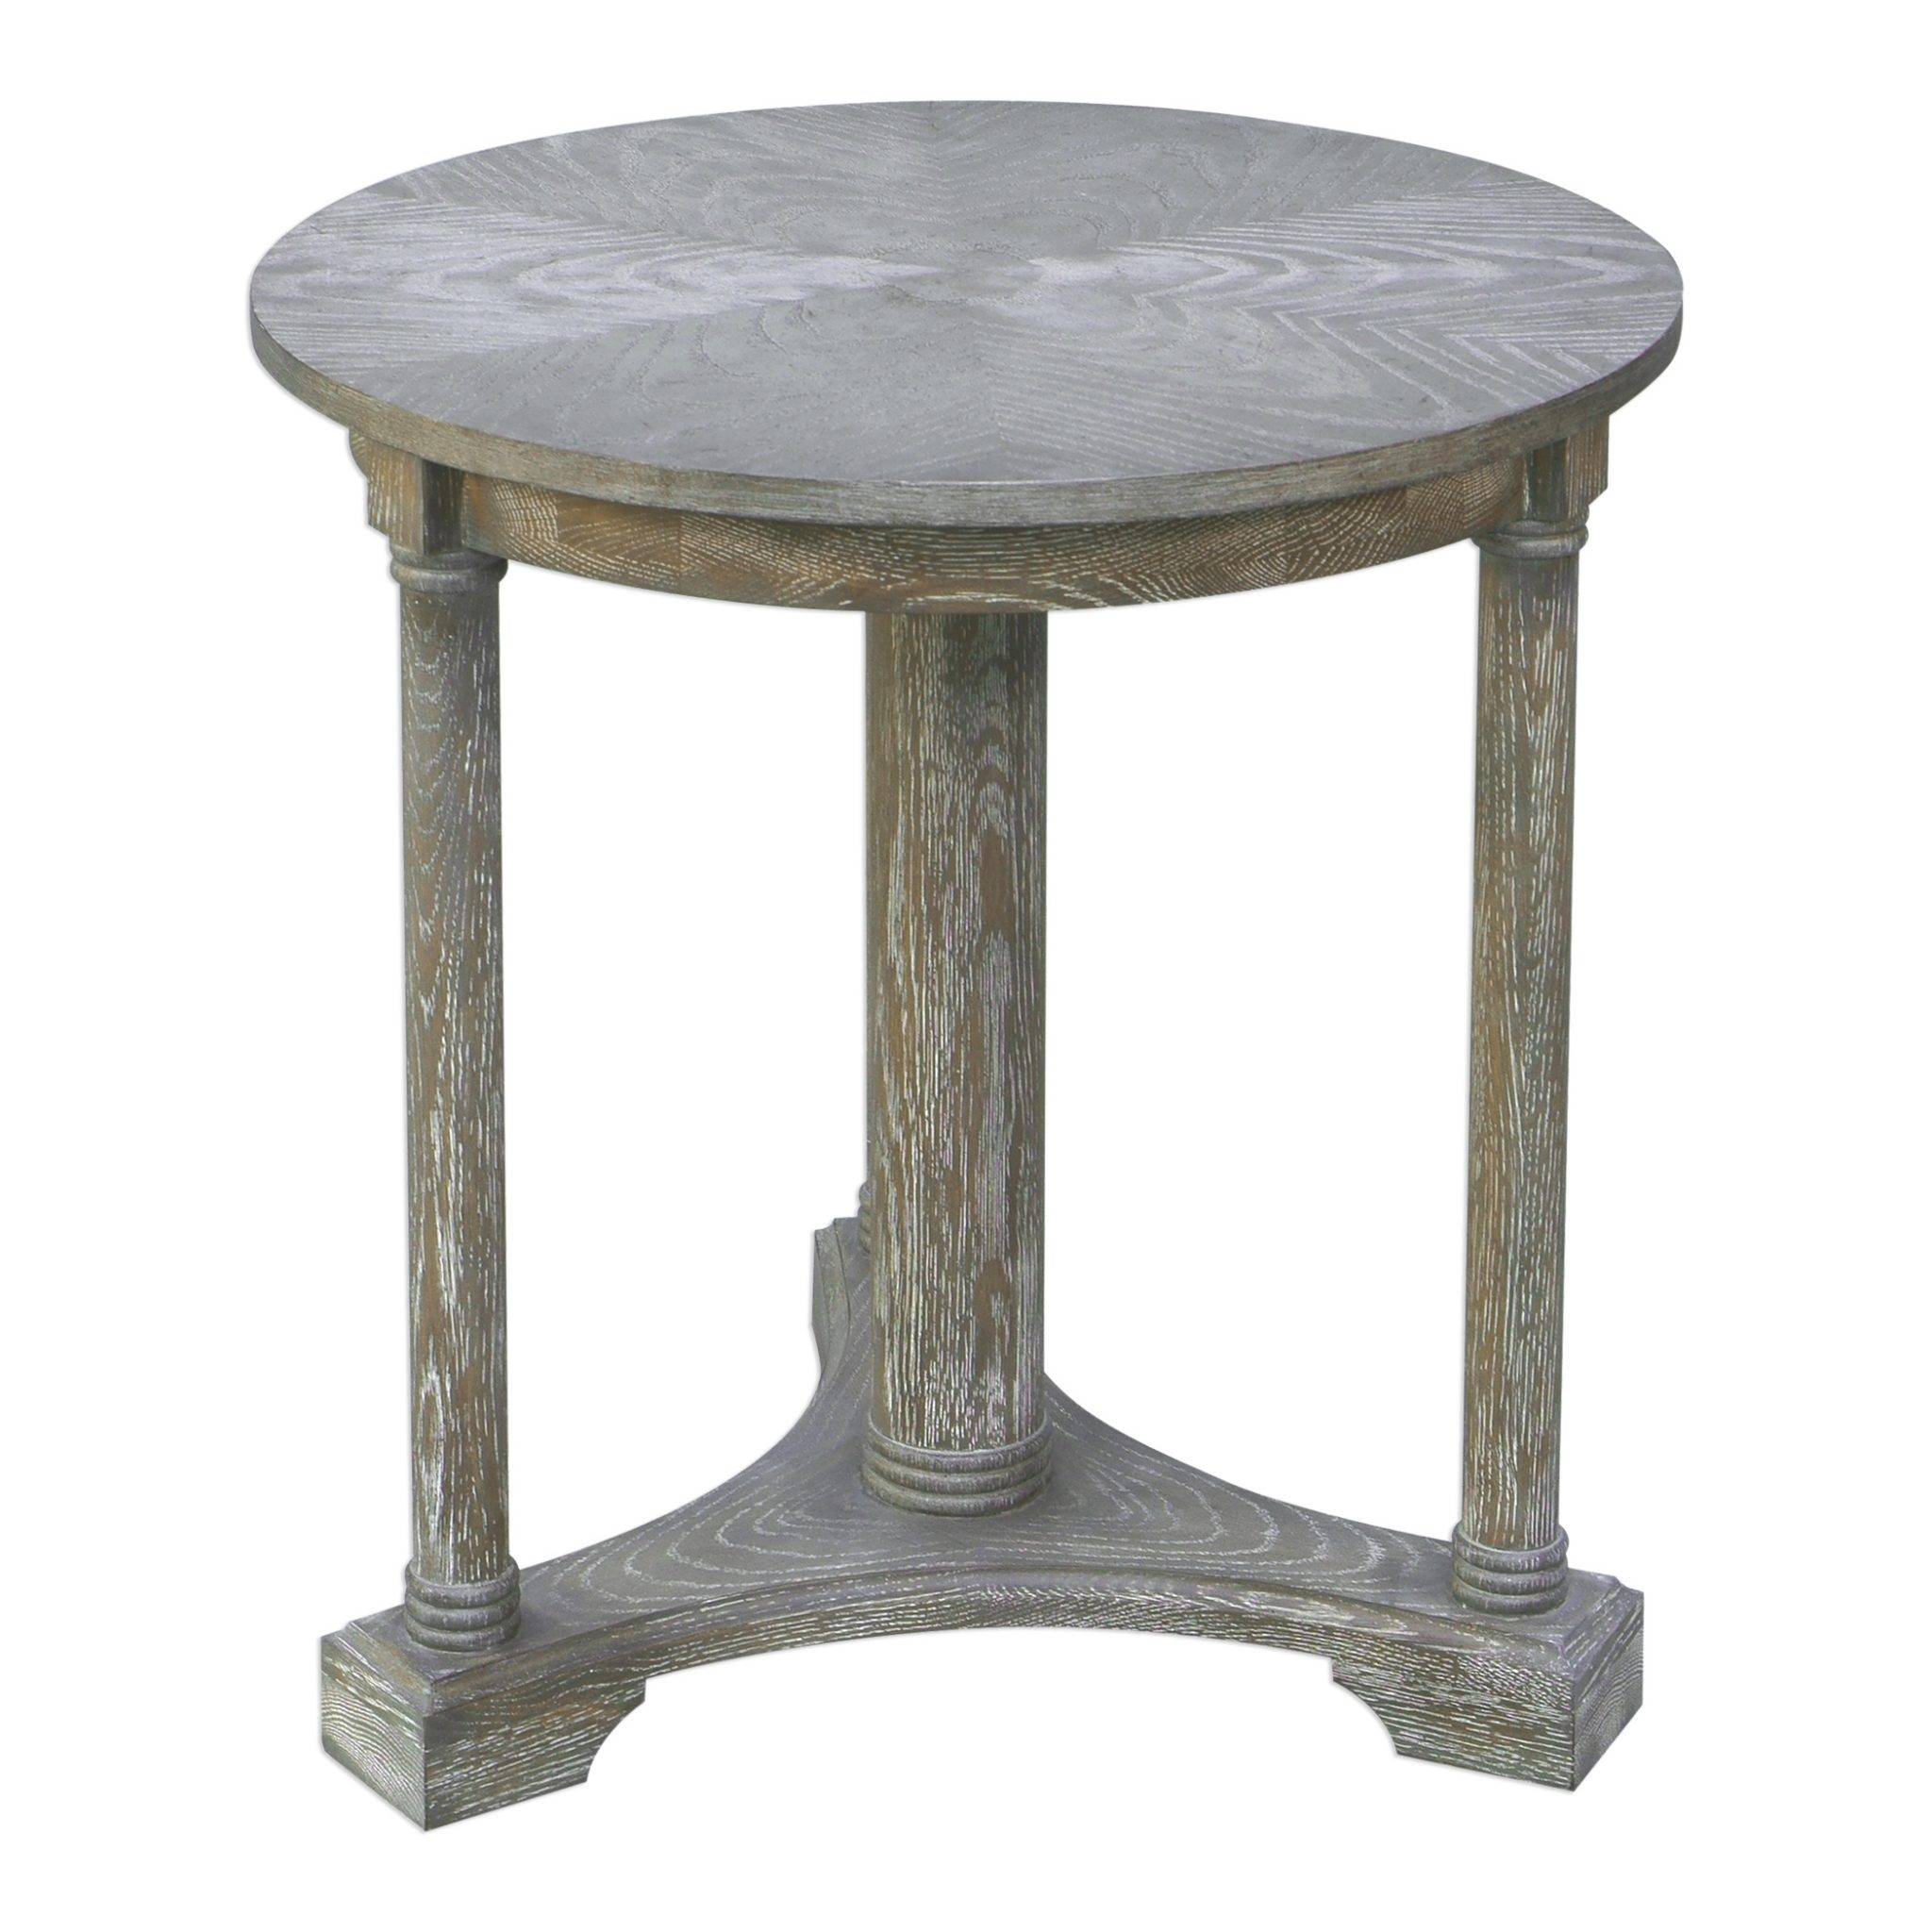 thema weathered gray accent table furn small round kitchen and chairs set wooden dining room square glass patio nautical decor lamps clear end honey oak tables dorm gifts